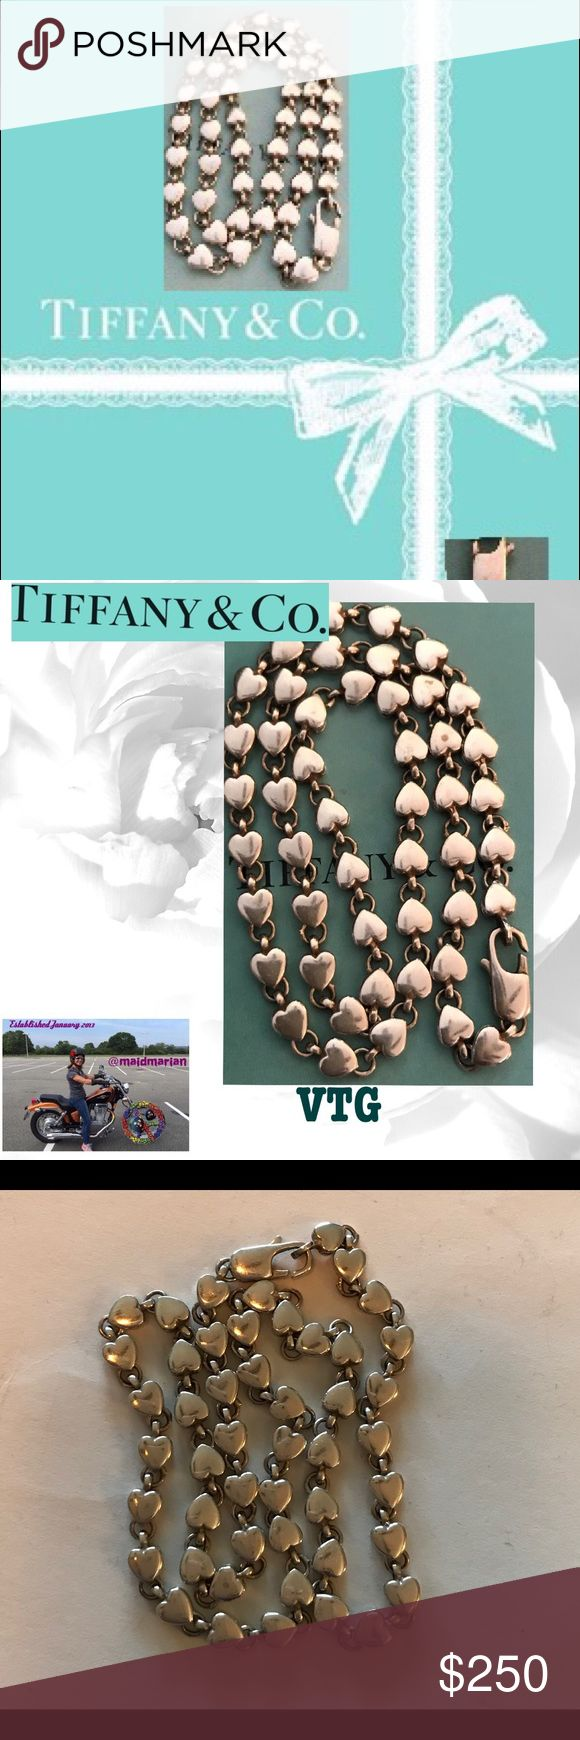 "💯AUTHENTIC RETIRED TIFFANY HEART NECKLACE This is a retired Tiffany's necklace I used to have matching bracelet but it's MIA. 16"". Marked T. Co. Hard to find! Any questions please ask! 🚫Trades. Offers welcome and remember to bundle for additional savings! Tx for browsing! Marian🌹 Tiffany & Co. Jewelry Necklaces"